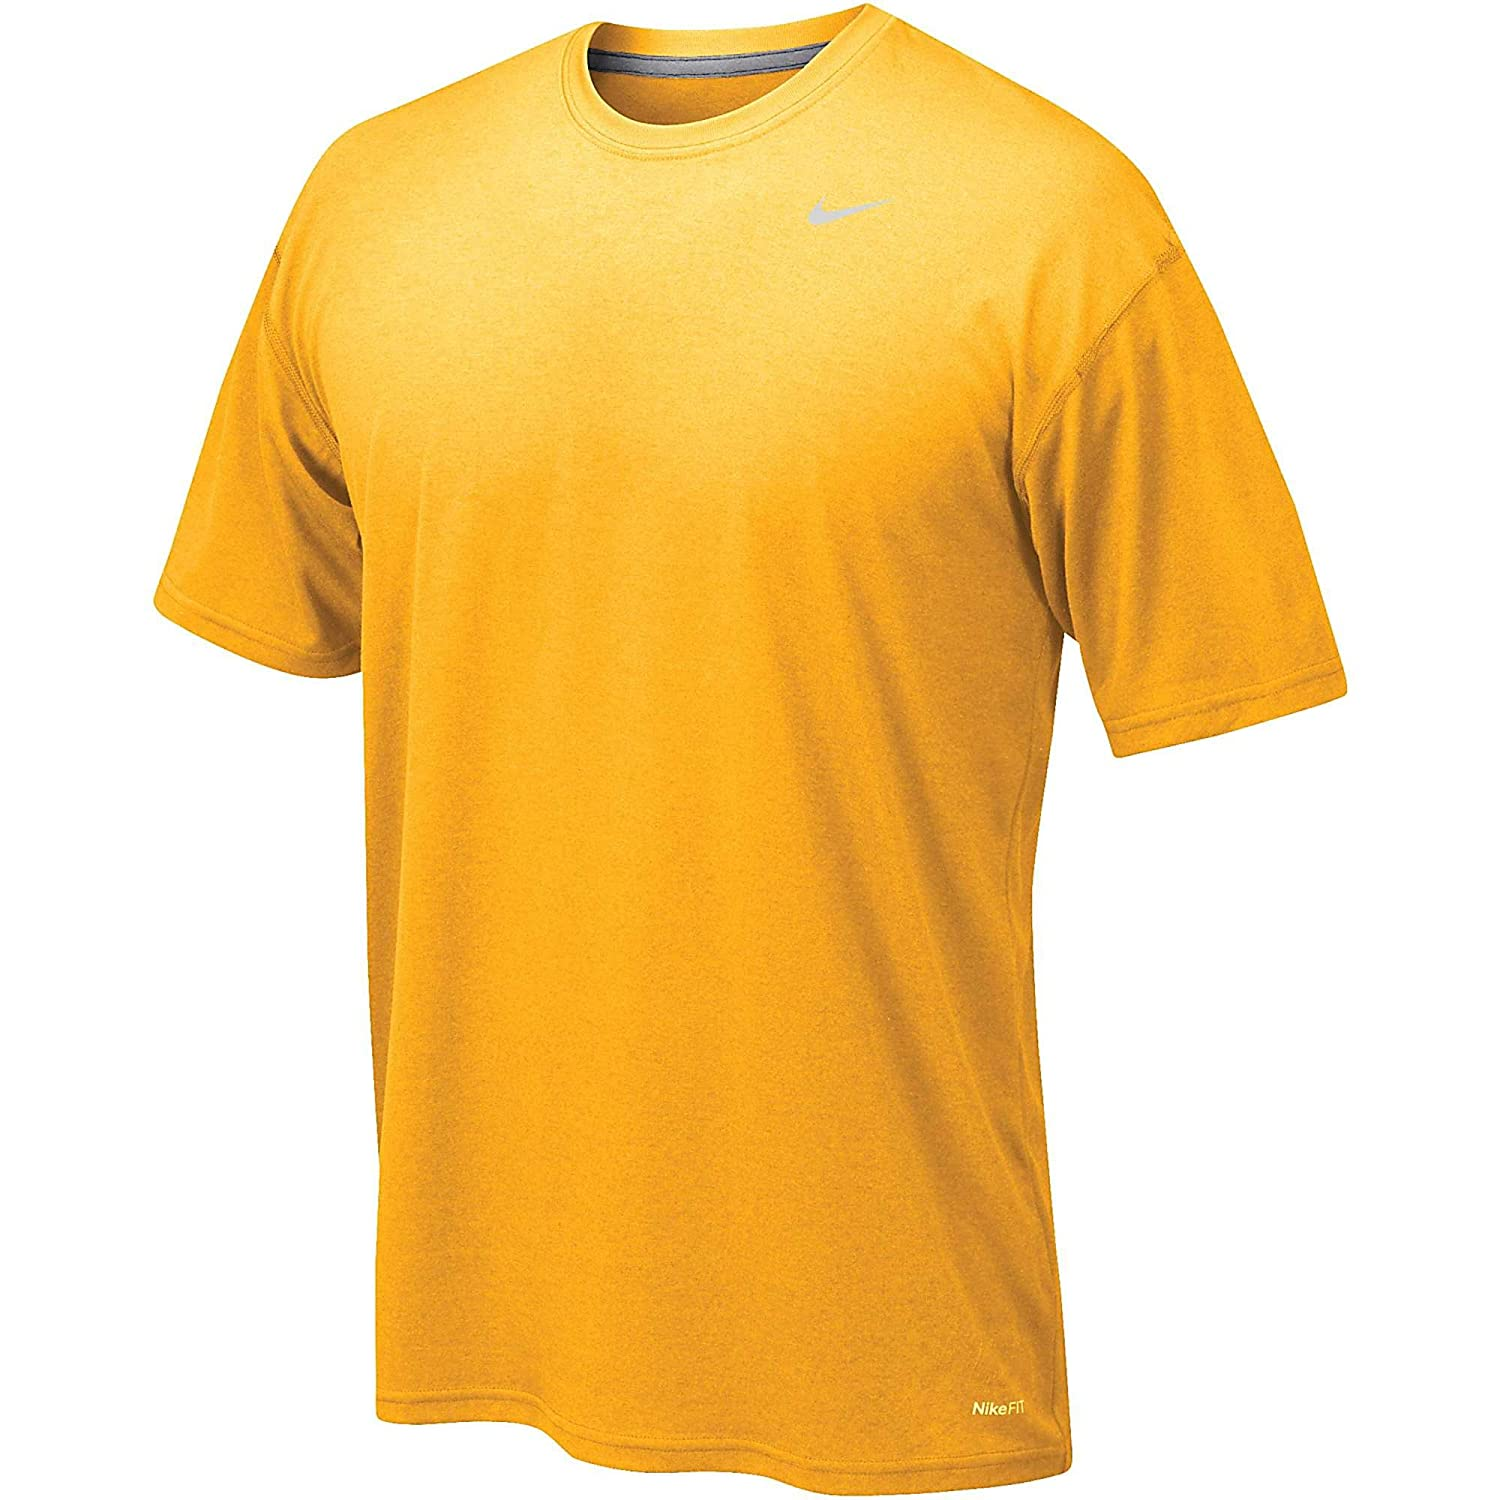 ccf3de18a6db6 NIKE Mens Legend Short Sleeve Tee at Amazon Men's Clothing store: